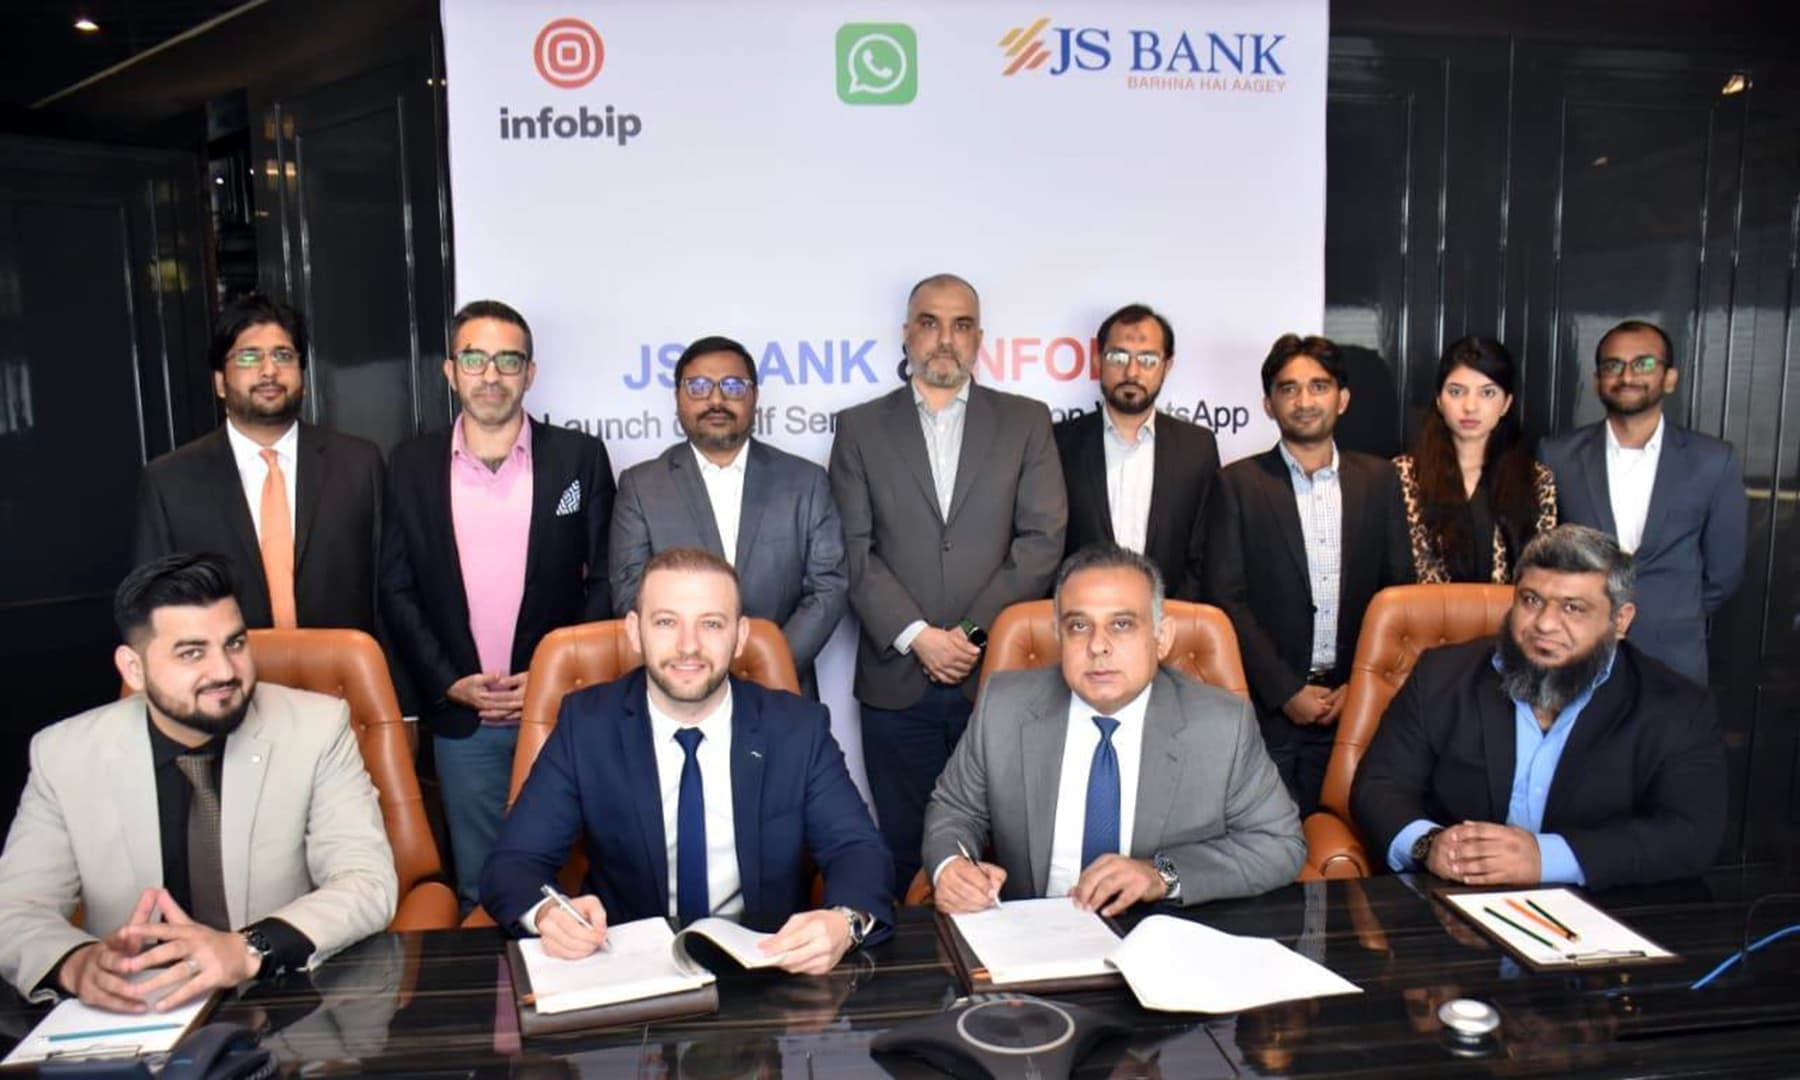 President and CEO JS Bank Basir Shamsie and Company Secretary Infobip Guray Ozturk sign agreement to Launch 'Self-Service Banking on WhatsApp. — JS Bank